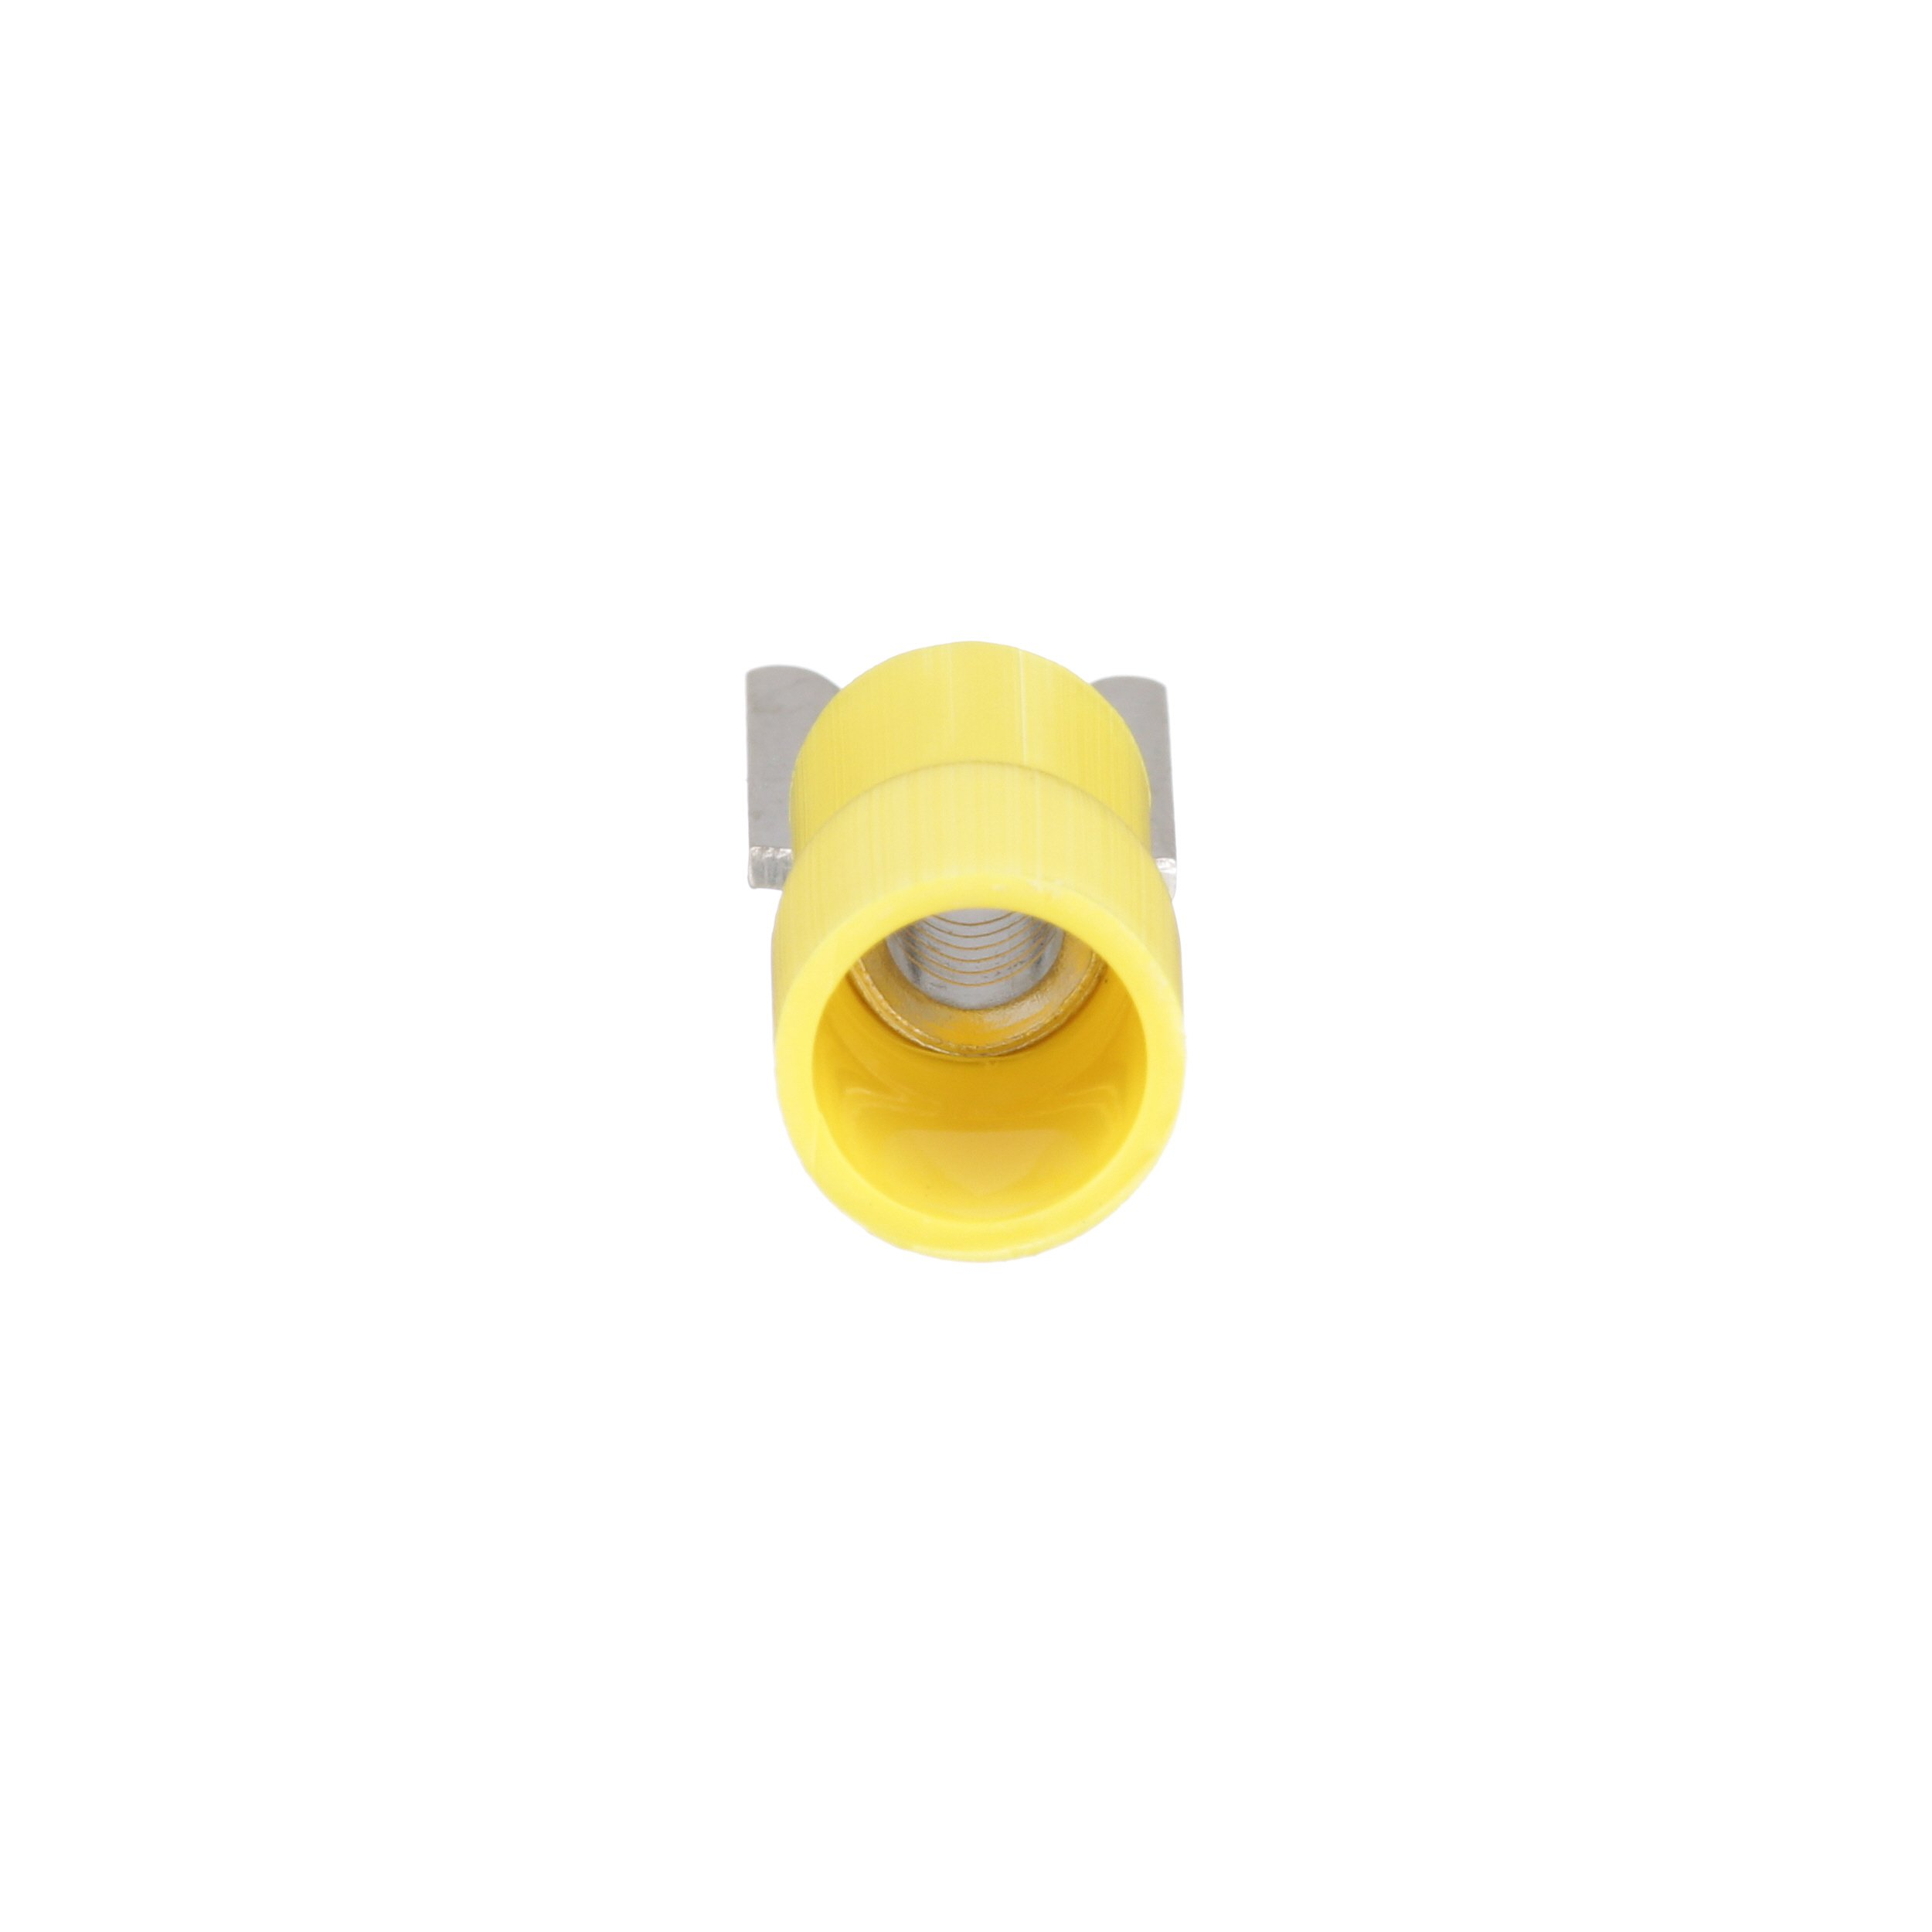 Panduit PV10-10R-D Ring Terminal, 12 - 10 AWG, #10 Stud Size, Funnel Entry, Vinyl Insulated by Panduit